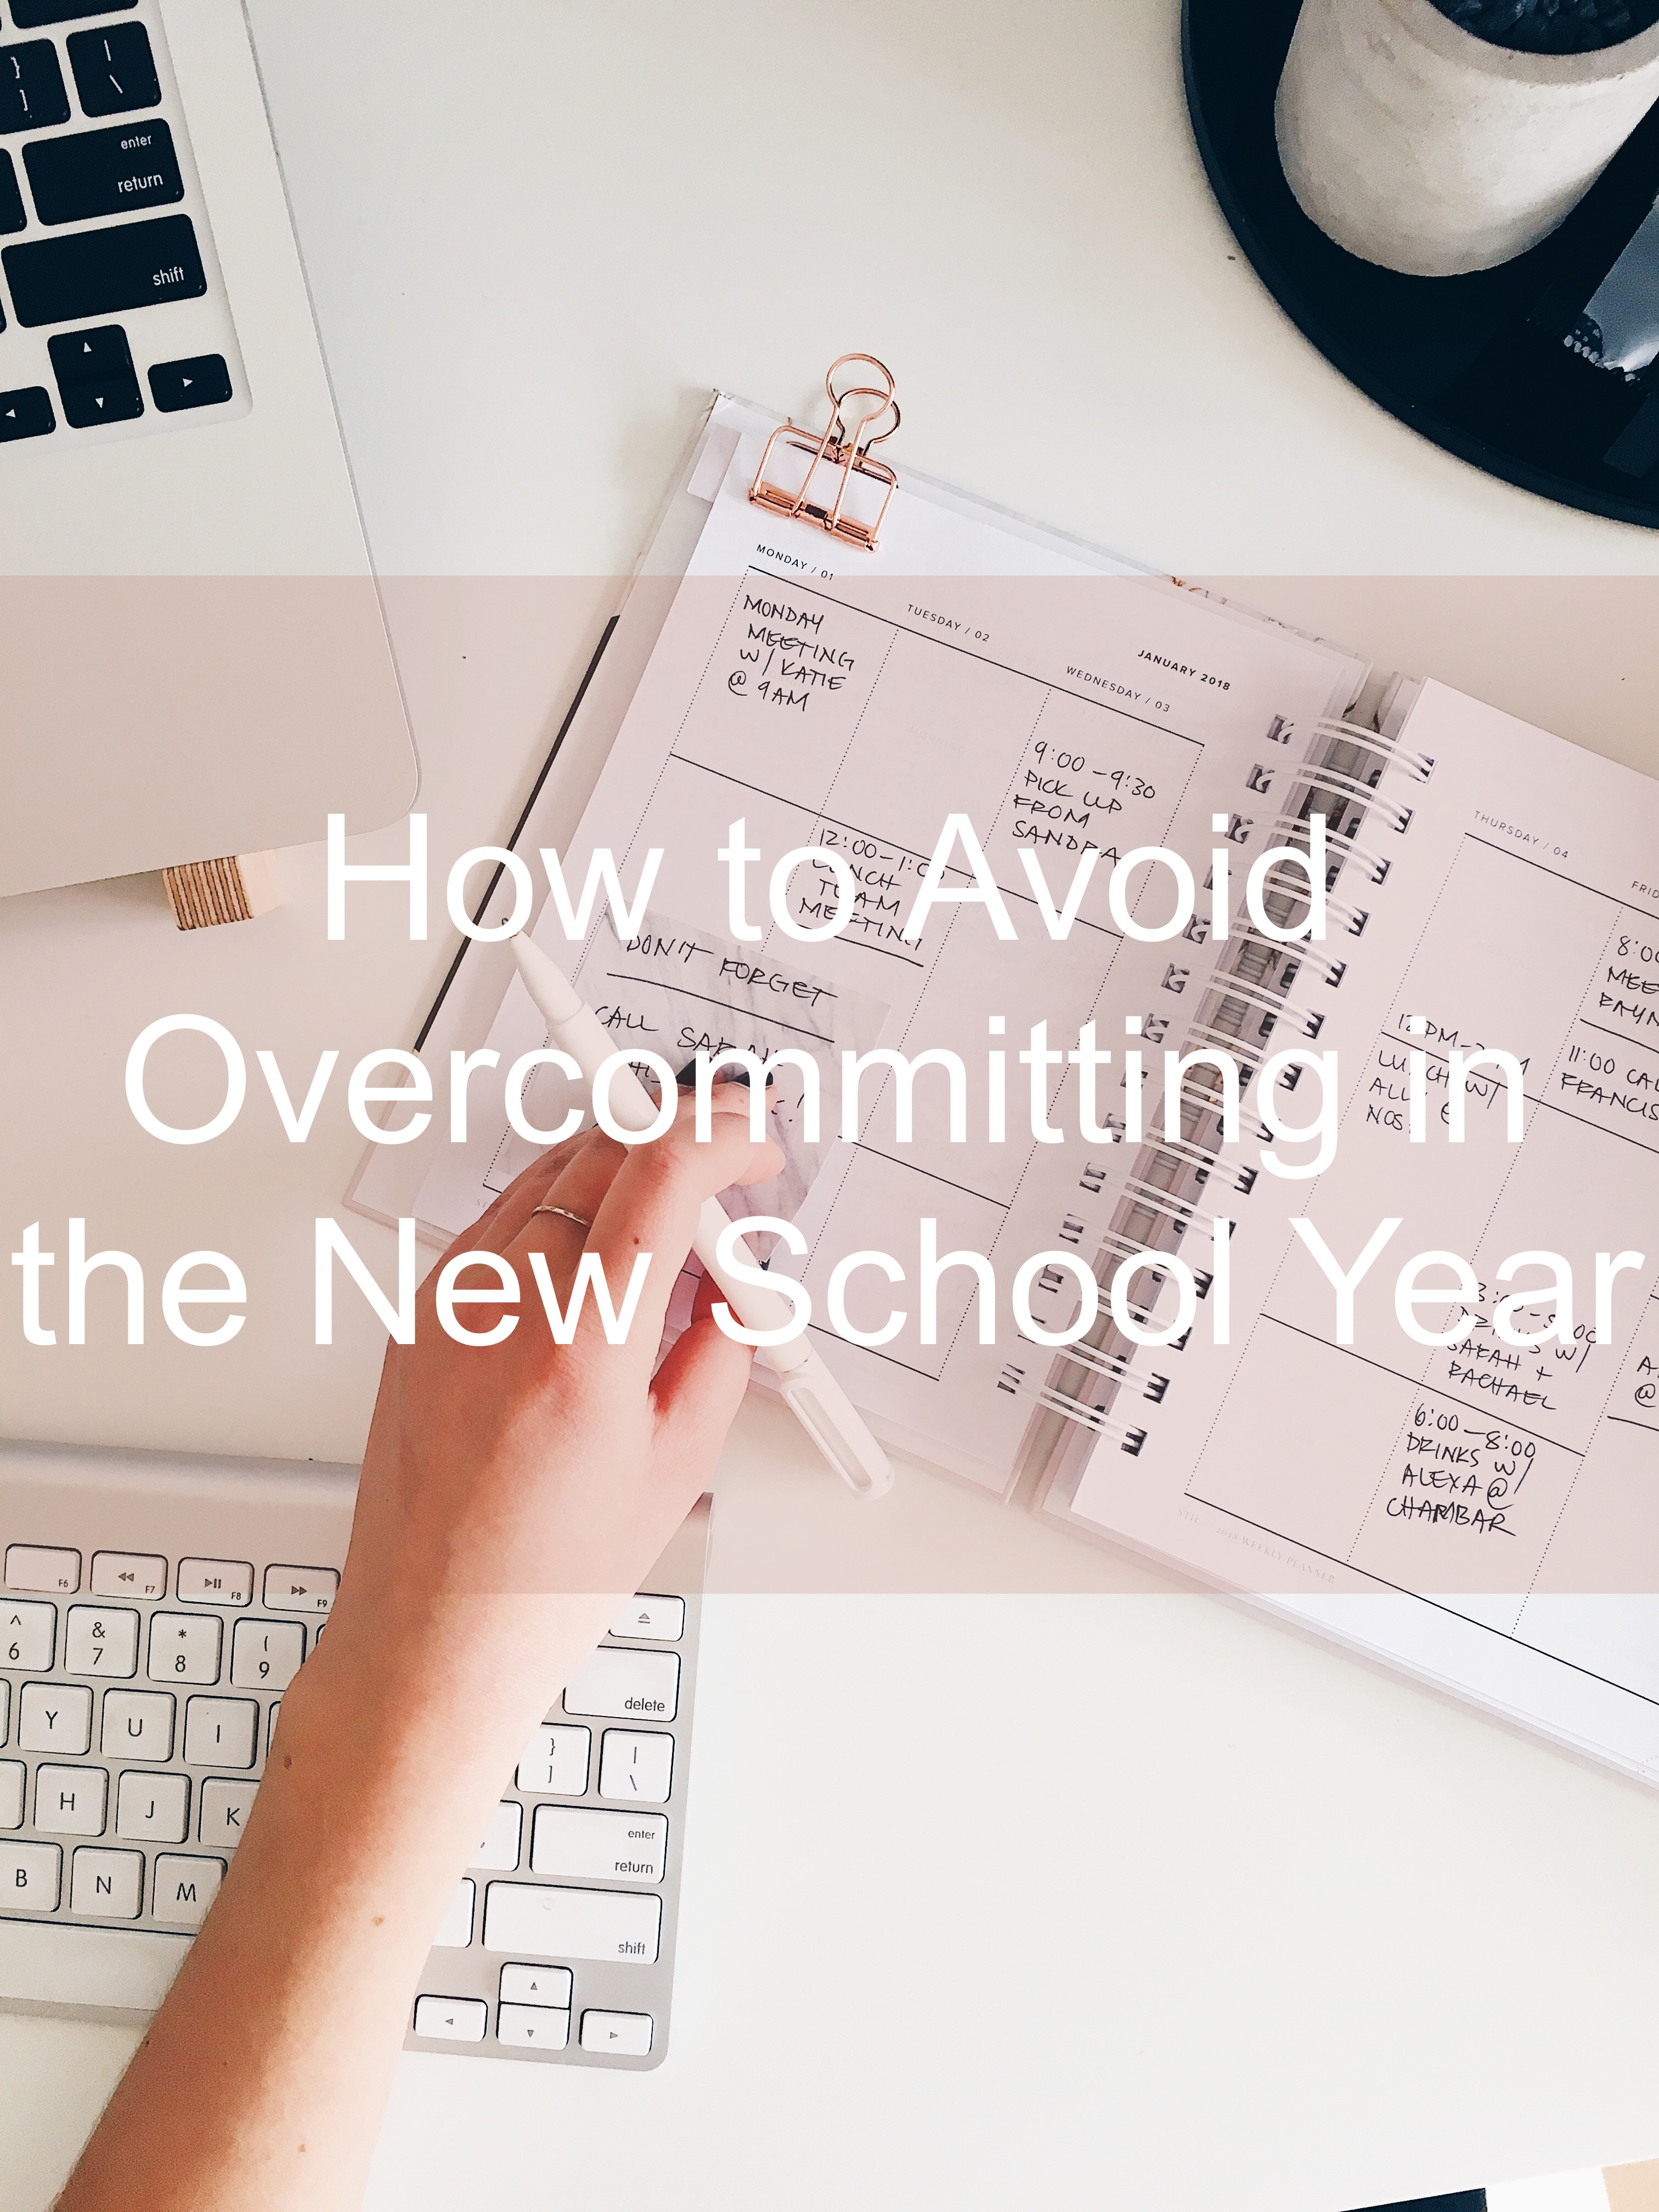 How to Avoid Overcommitting in the New School Year